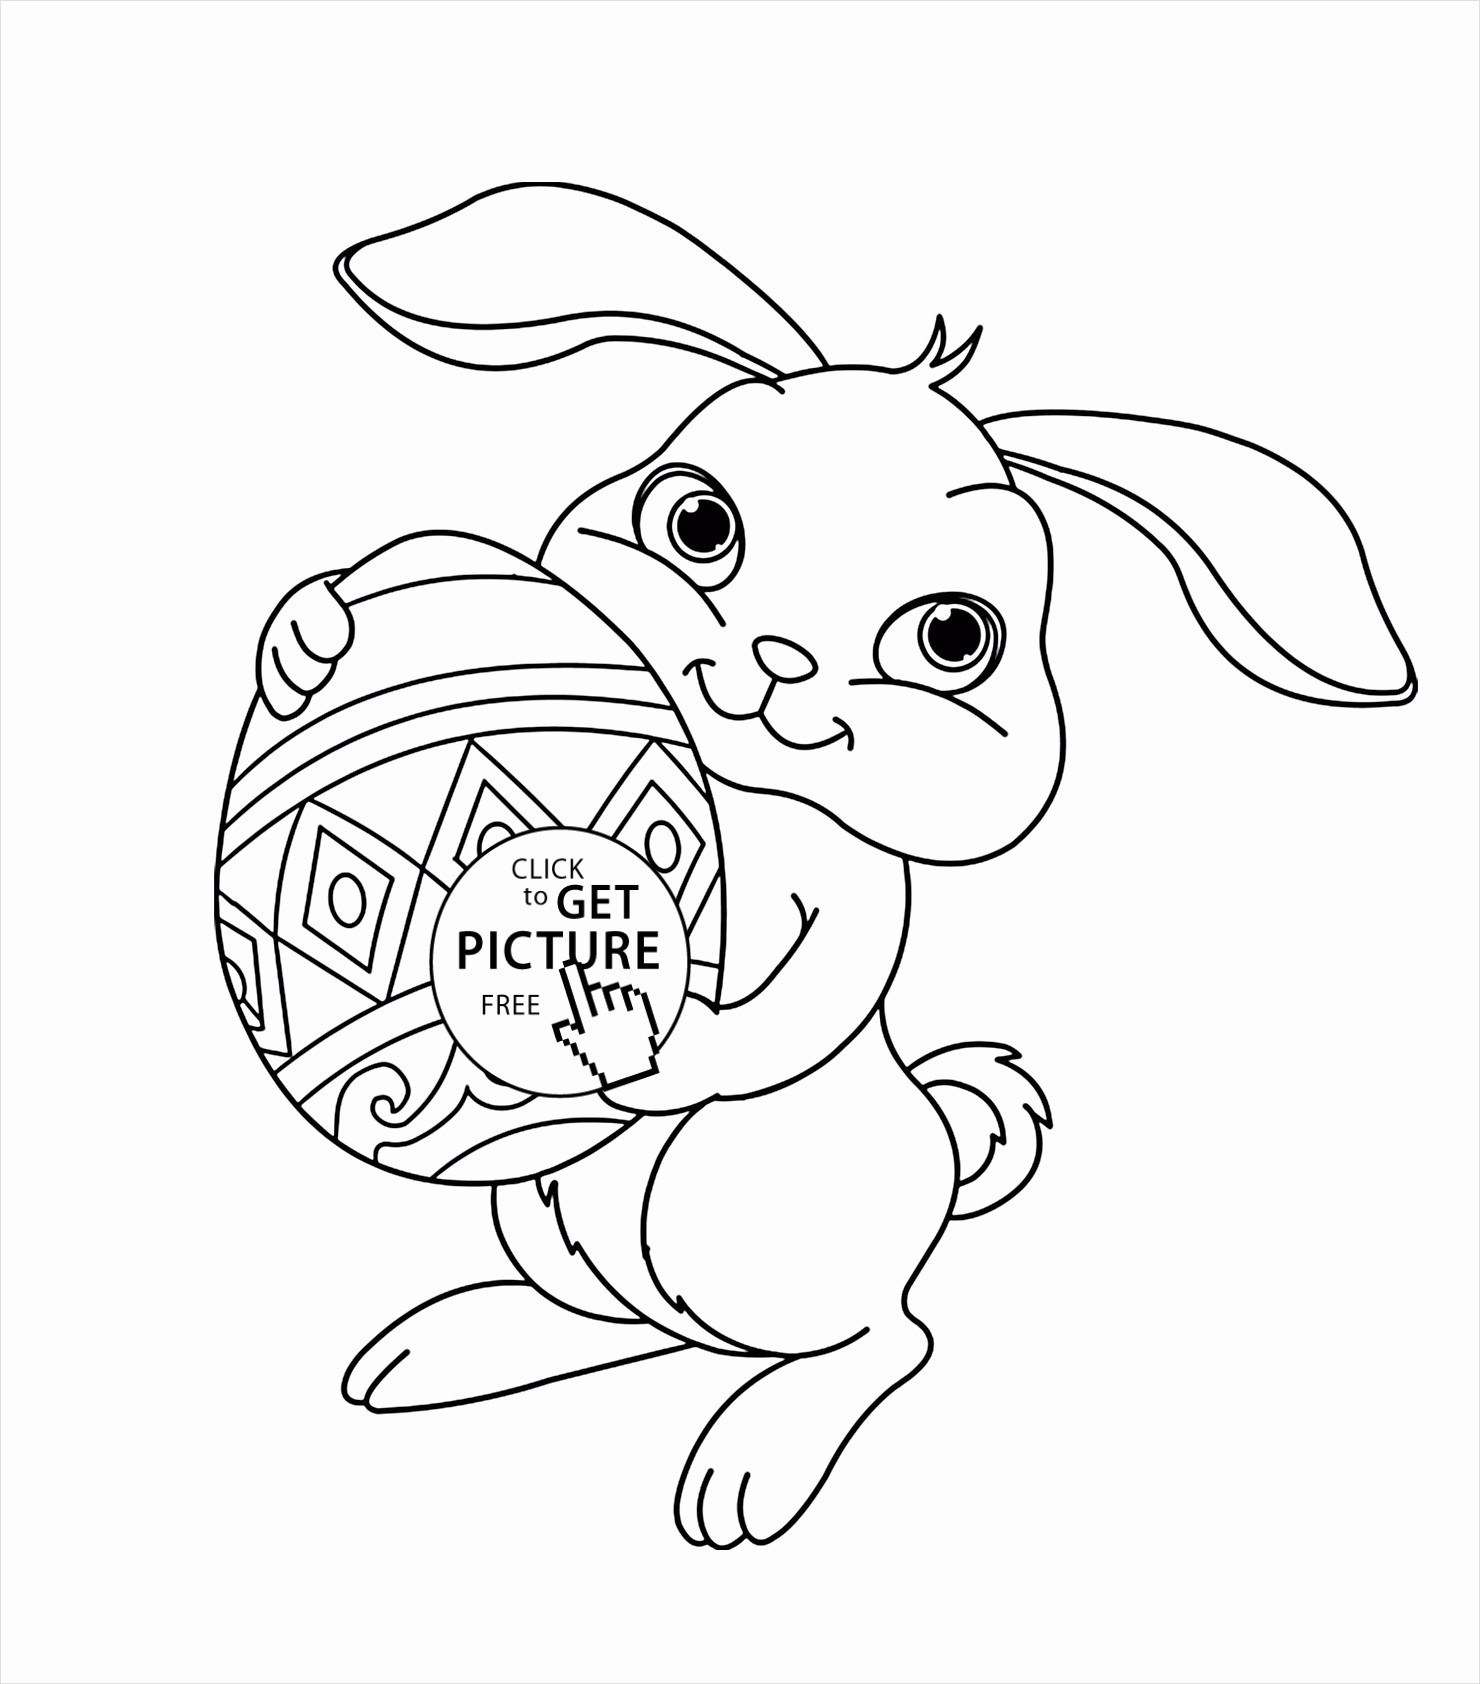 Ausmalbilder Bugs Bunny Inspirierend Bugs Bunny Easter Coloring Pages Best Coloring Pages A Rabbit to Bild